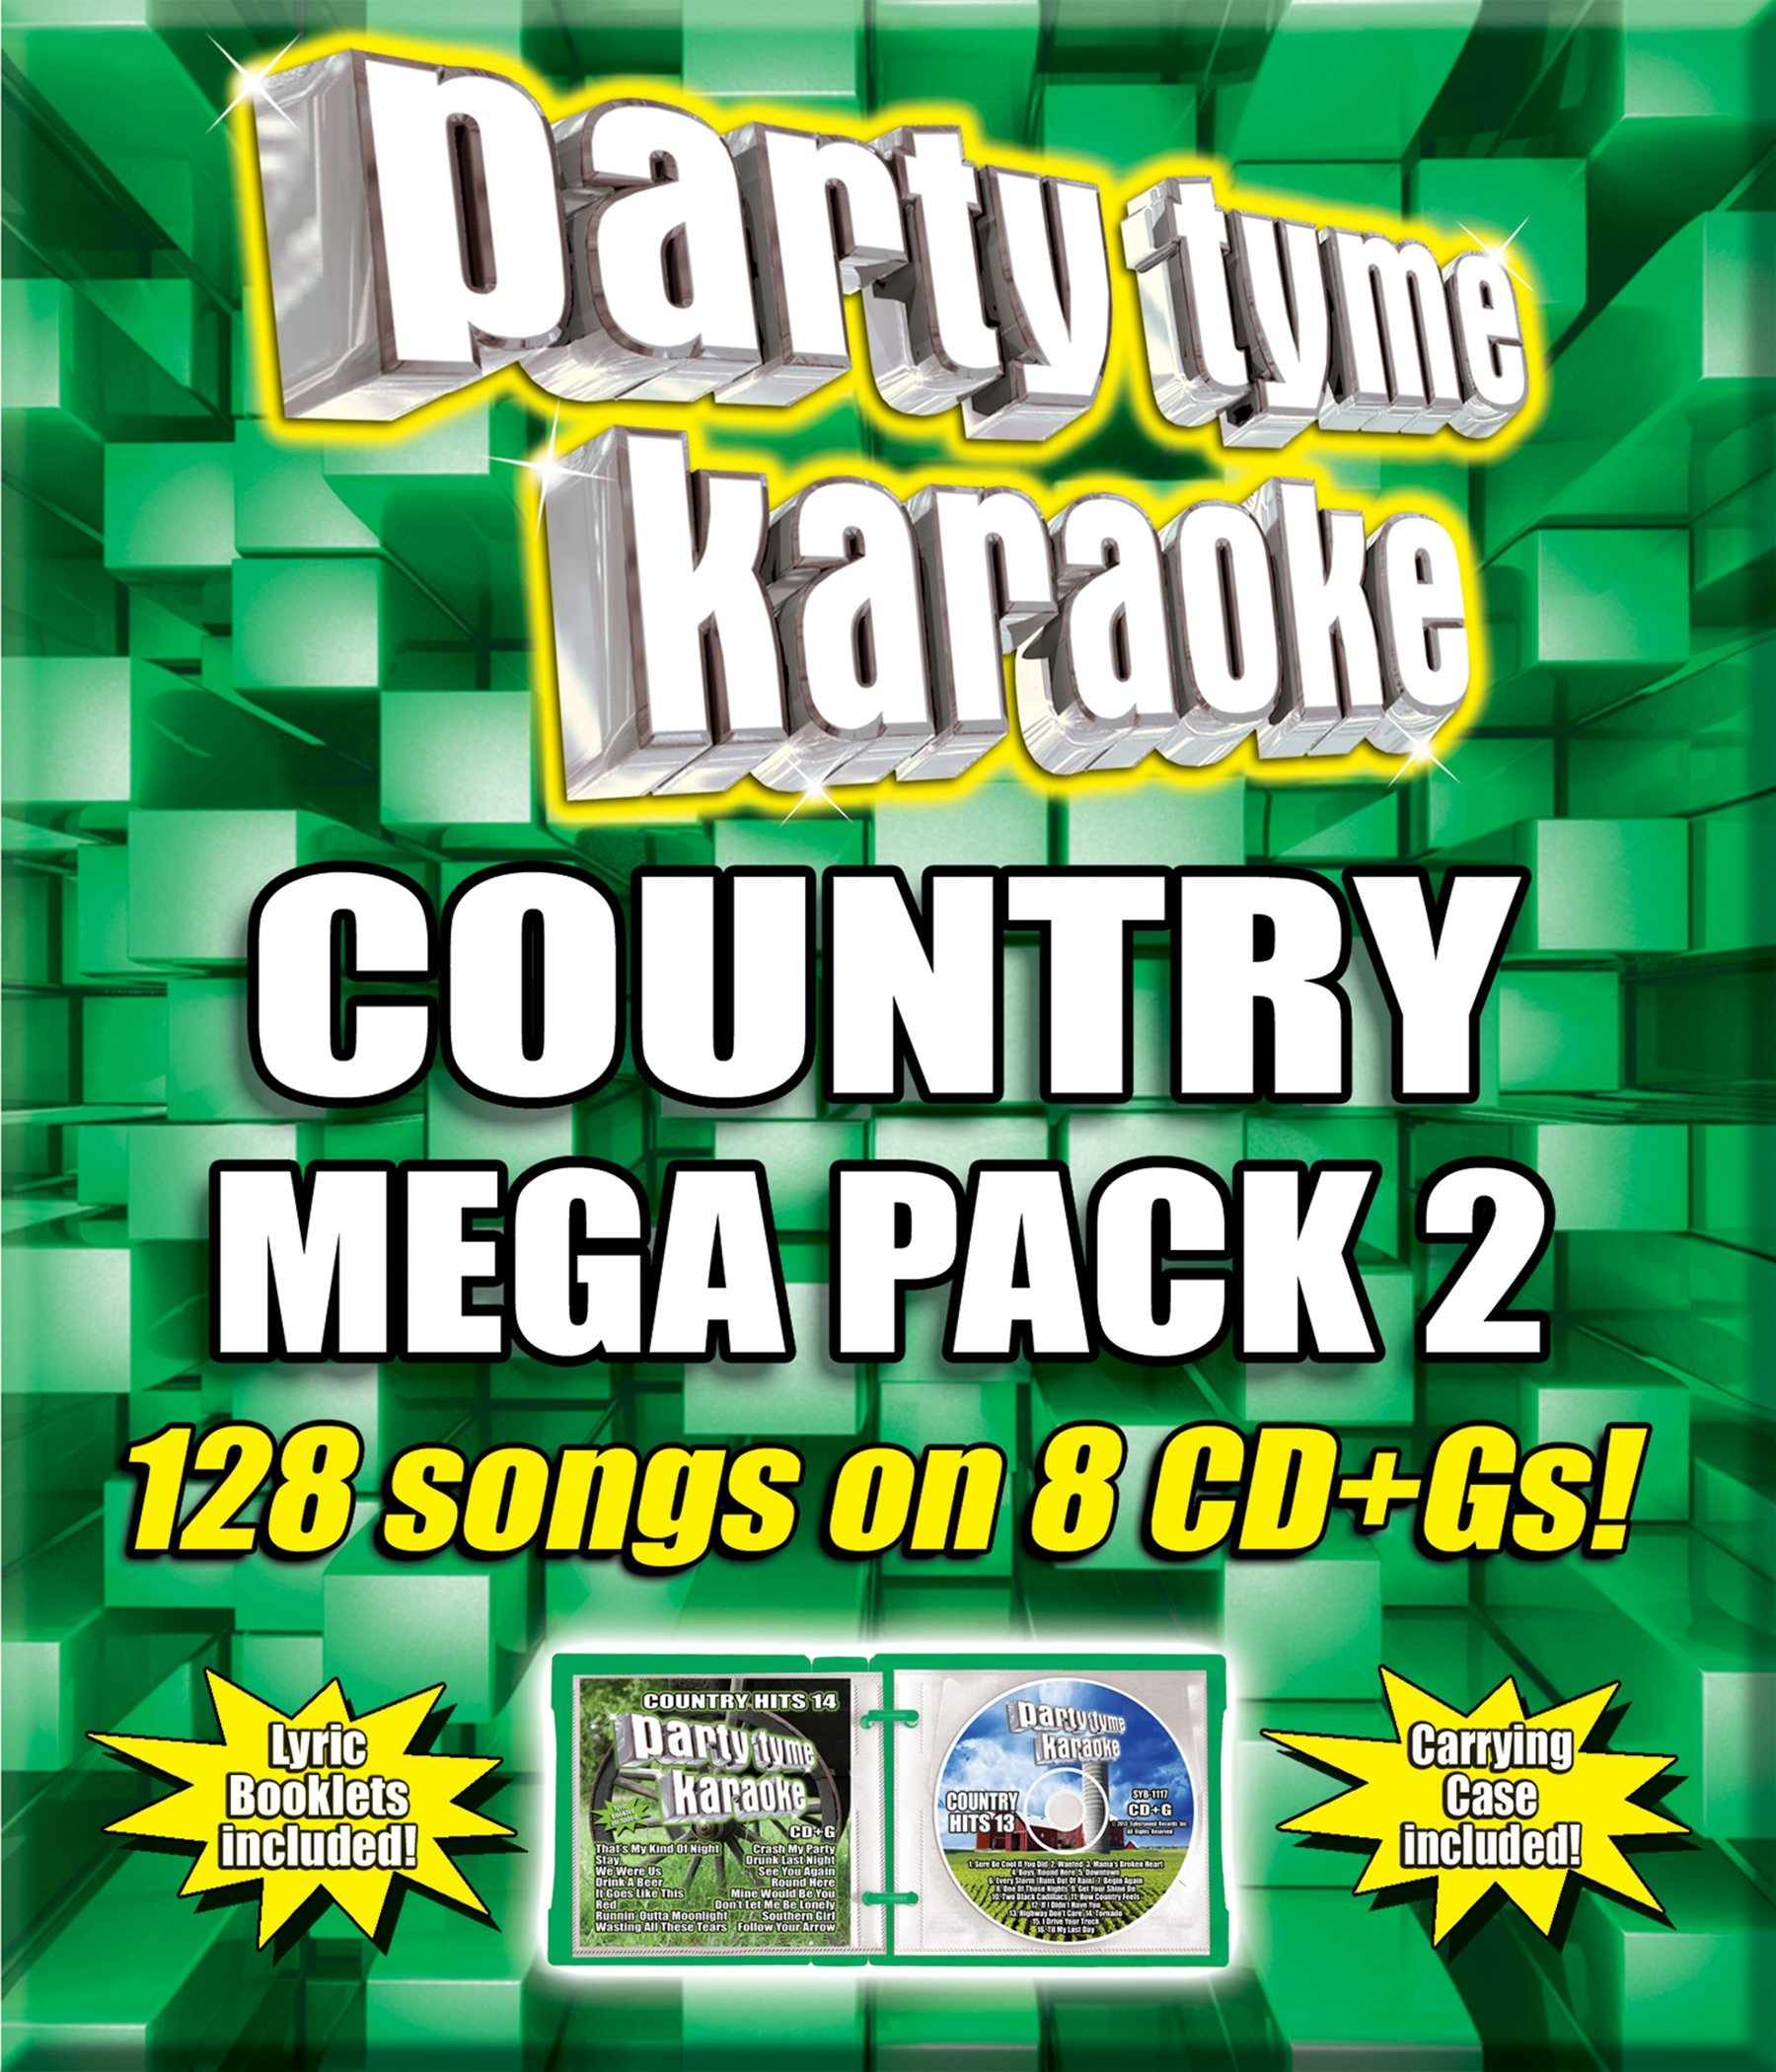 Party Tyme Karaoke - Country Mega Pack 2 [8 CD + G]